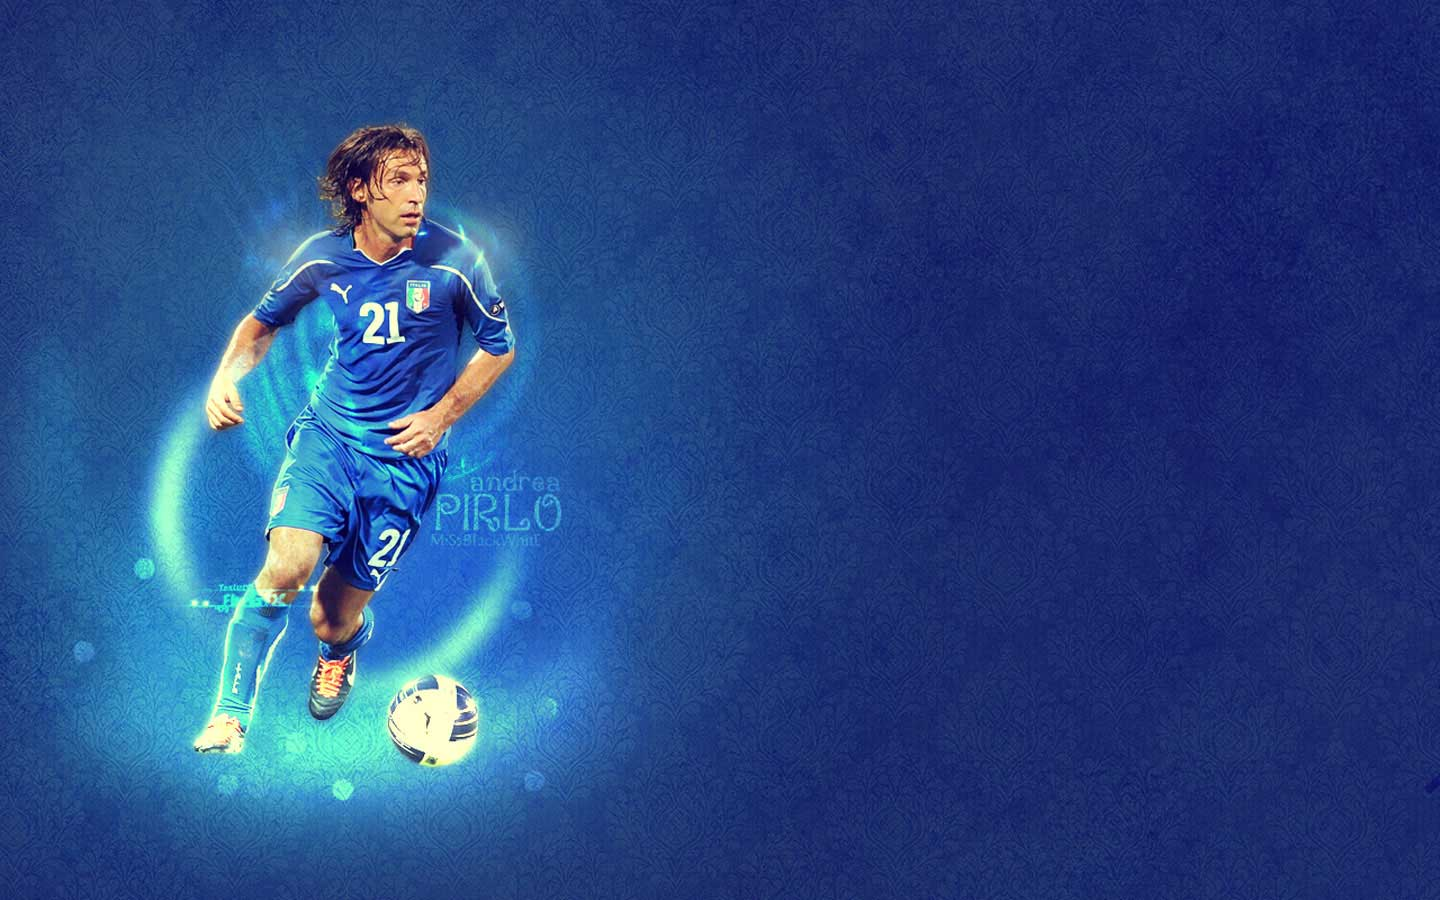 1440x900 - Andrea Pirlo Wallpapers 24